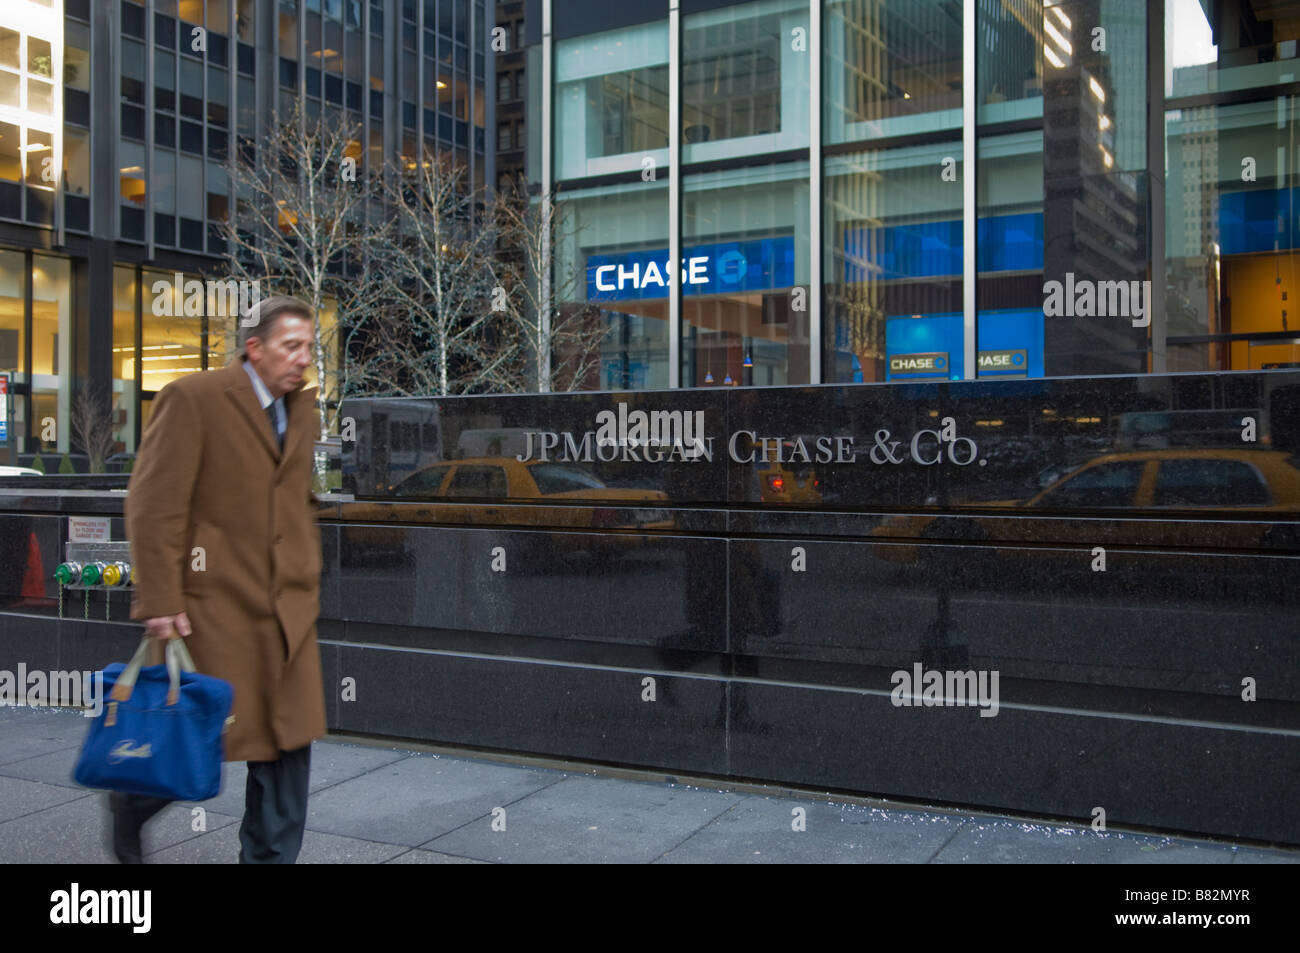 The sign outside the JP Morgan Chase headquarters in New York City ...